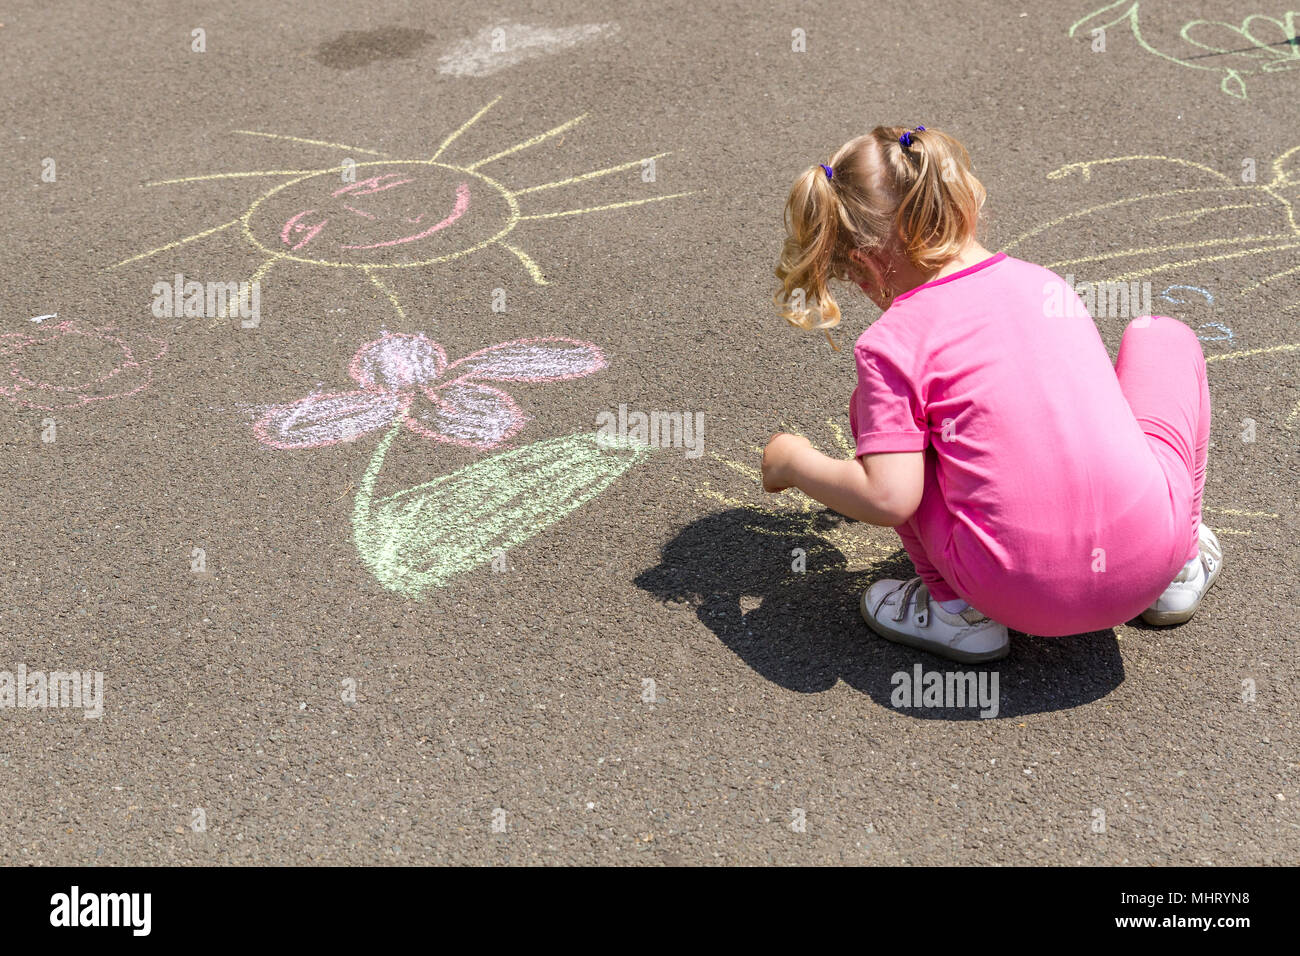 Young blonde girl in pink cloth drawing with chalk on asphalt. Image taken in a park, in a sunny day of summer. - Stock Image